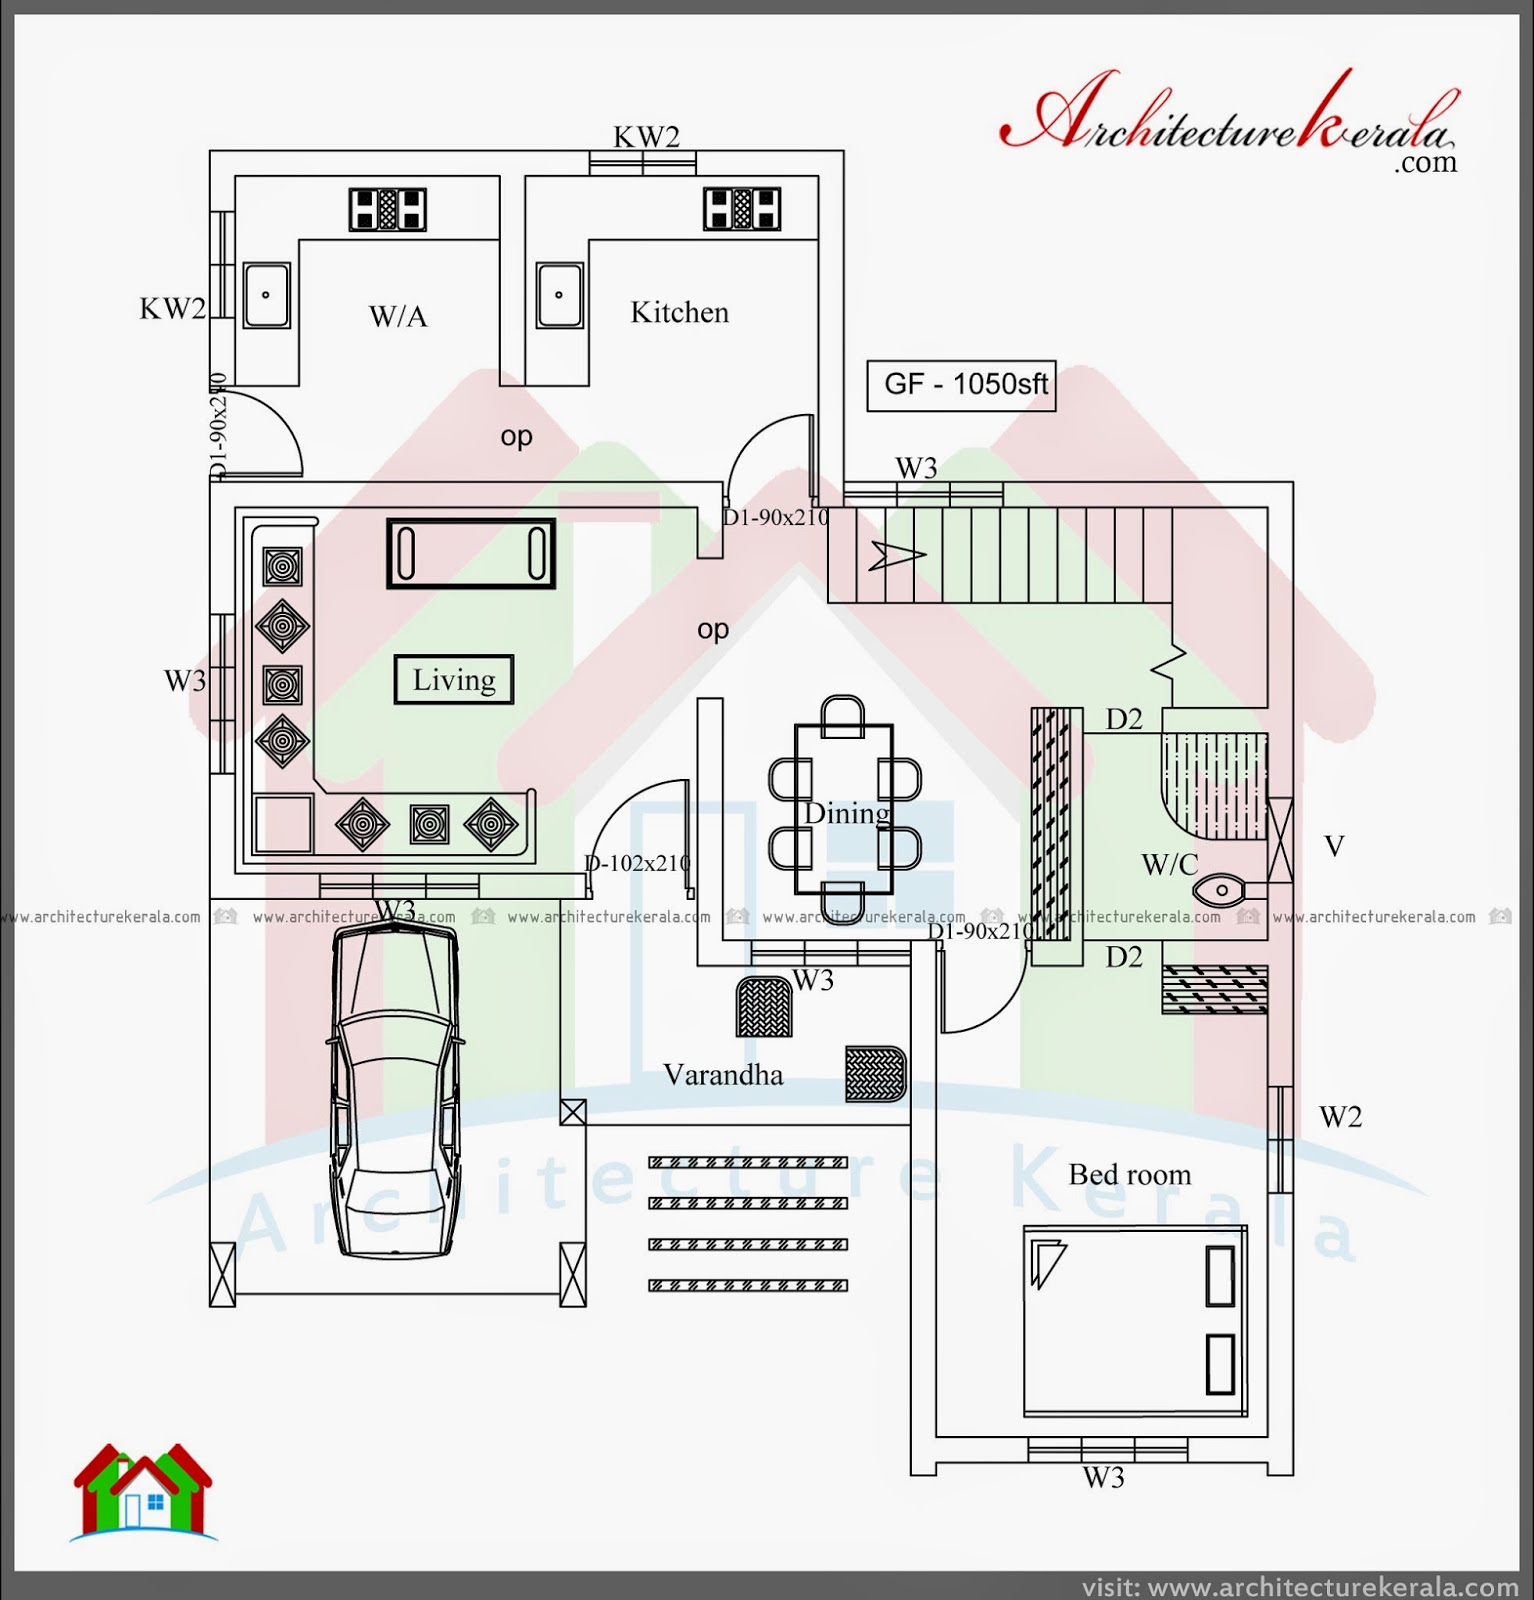 Three bedroom two storey house plan architecture kerala for Two story house floor plans